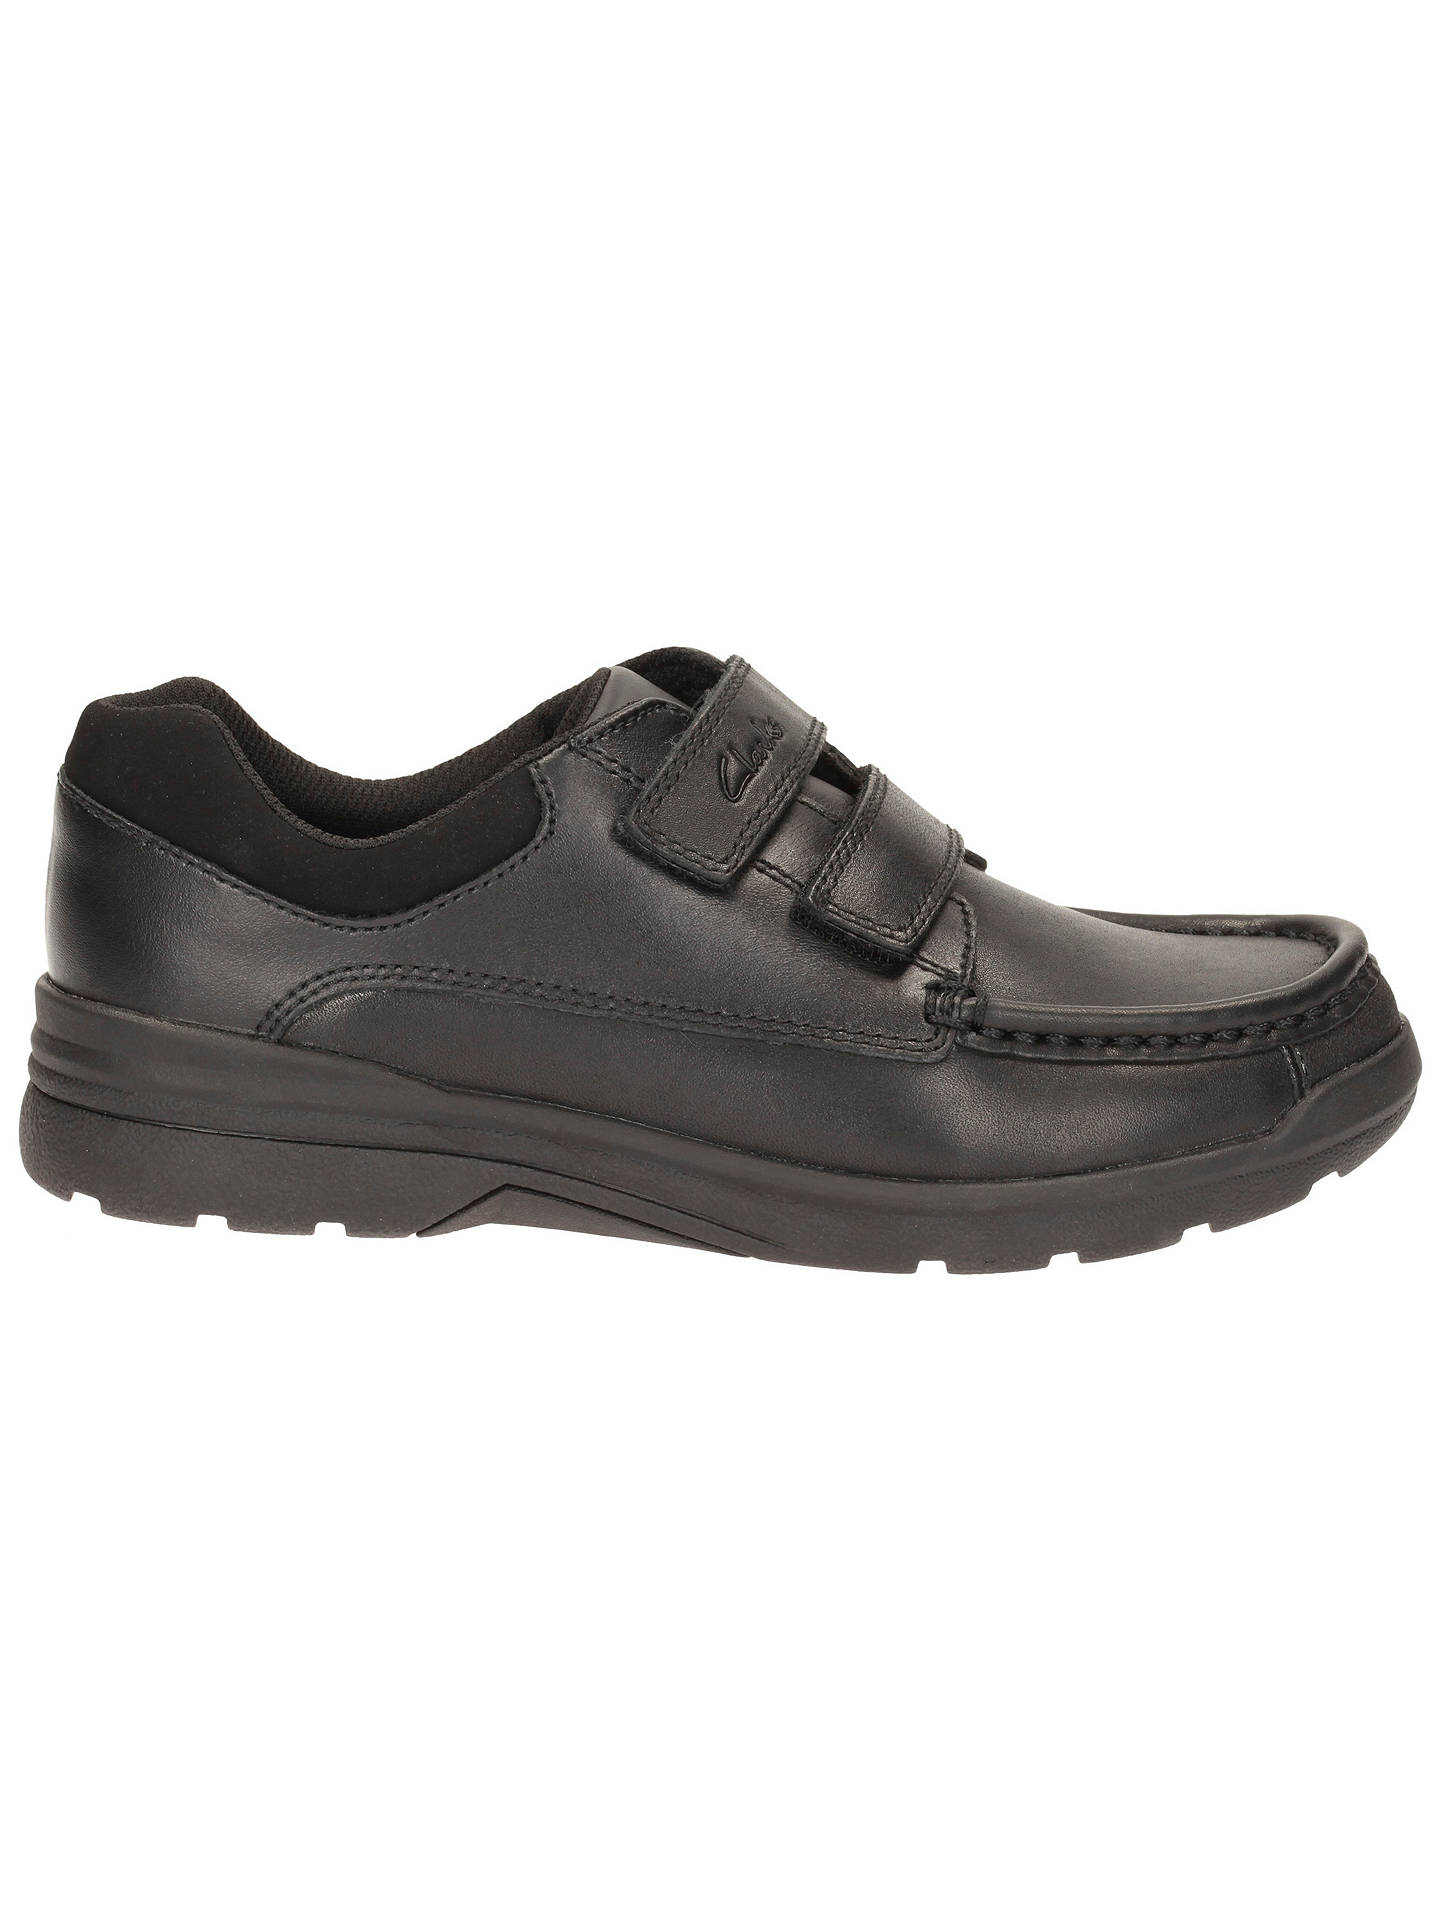 Boys Clarks Leather Smart School Shoes Obie Play